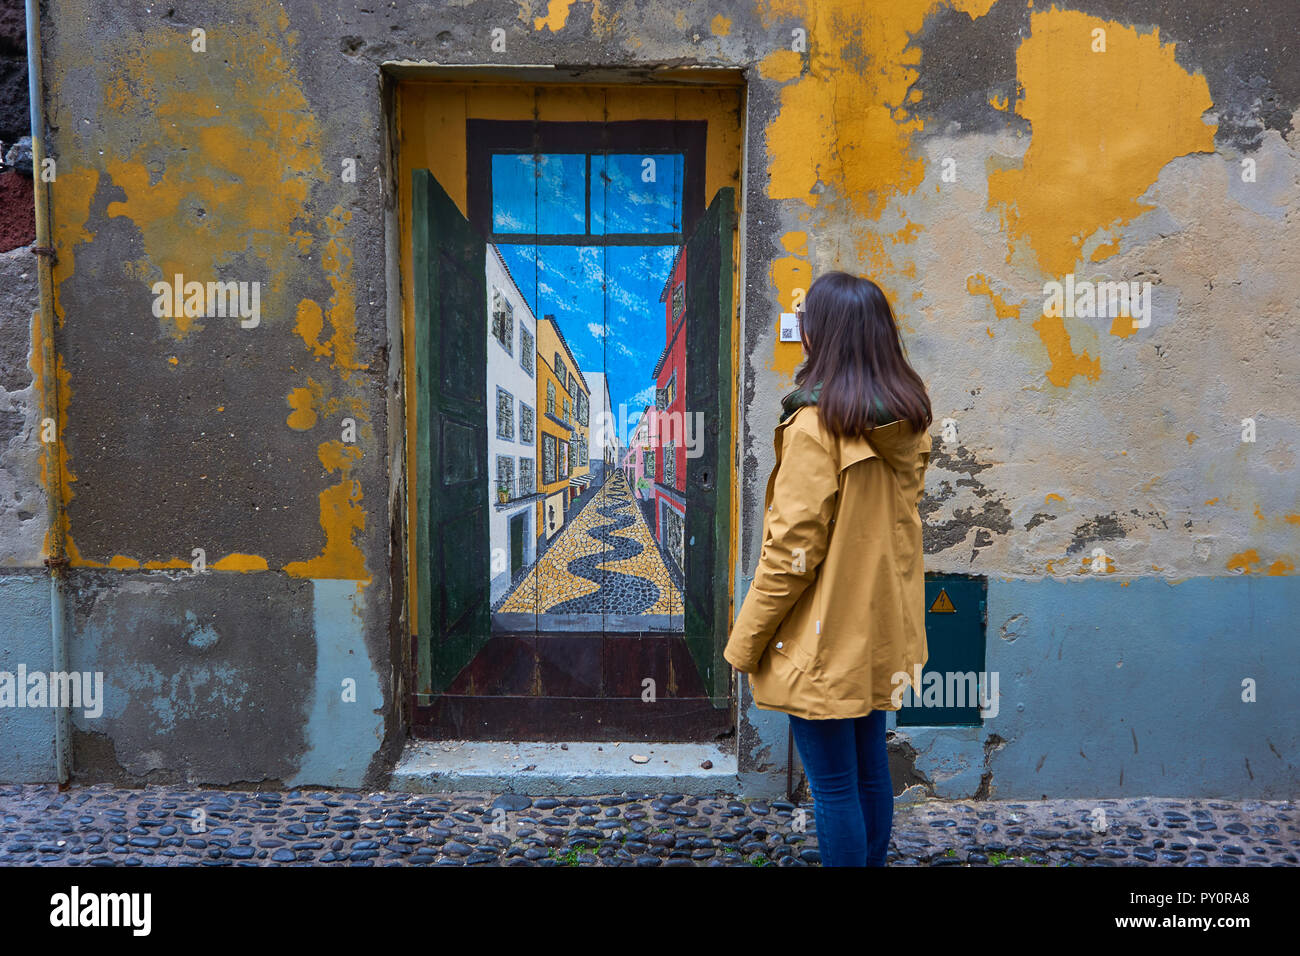 Girl Woman Traveler looking at a painted door on a traditional street in Funchal, Madeira - Stock Image